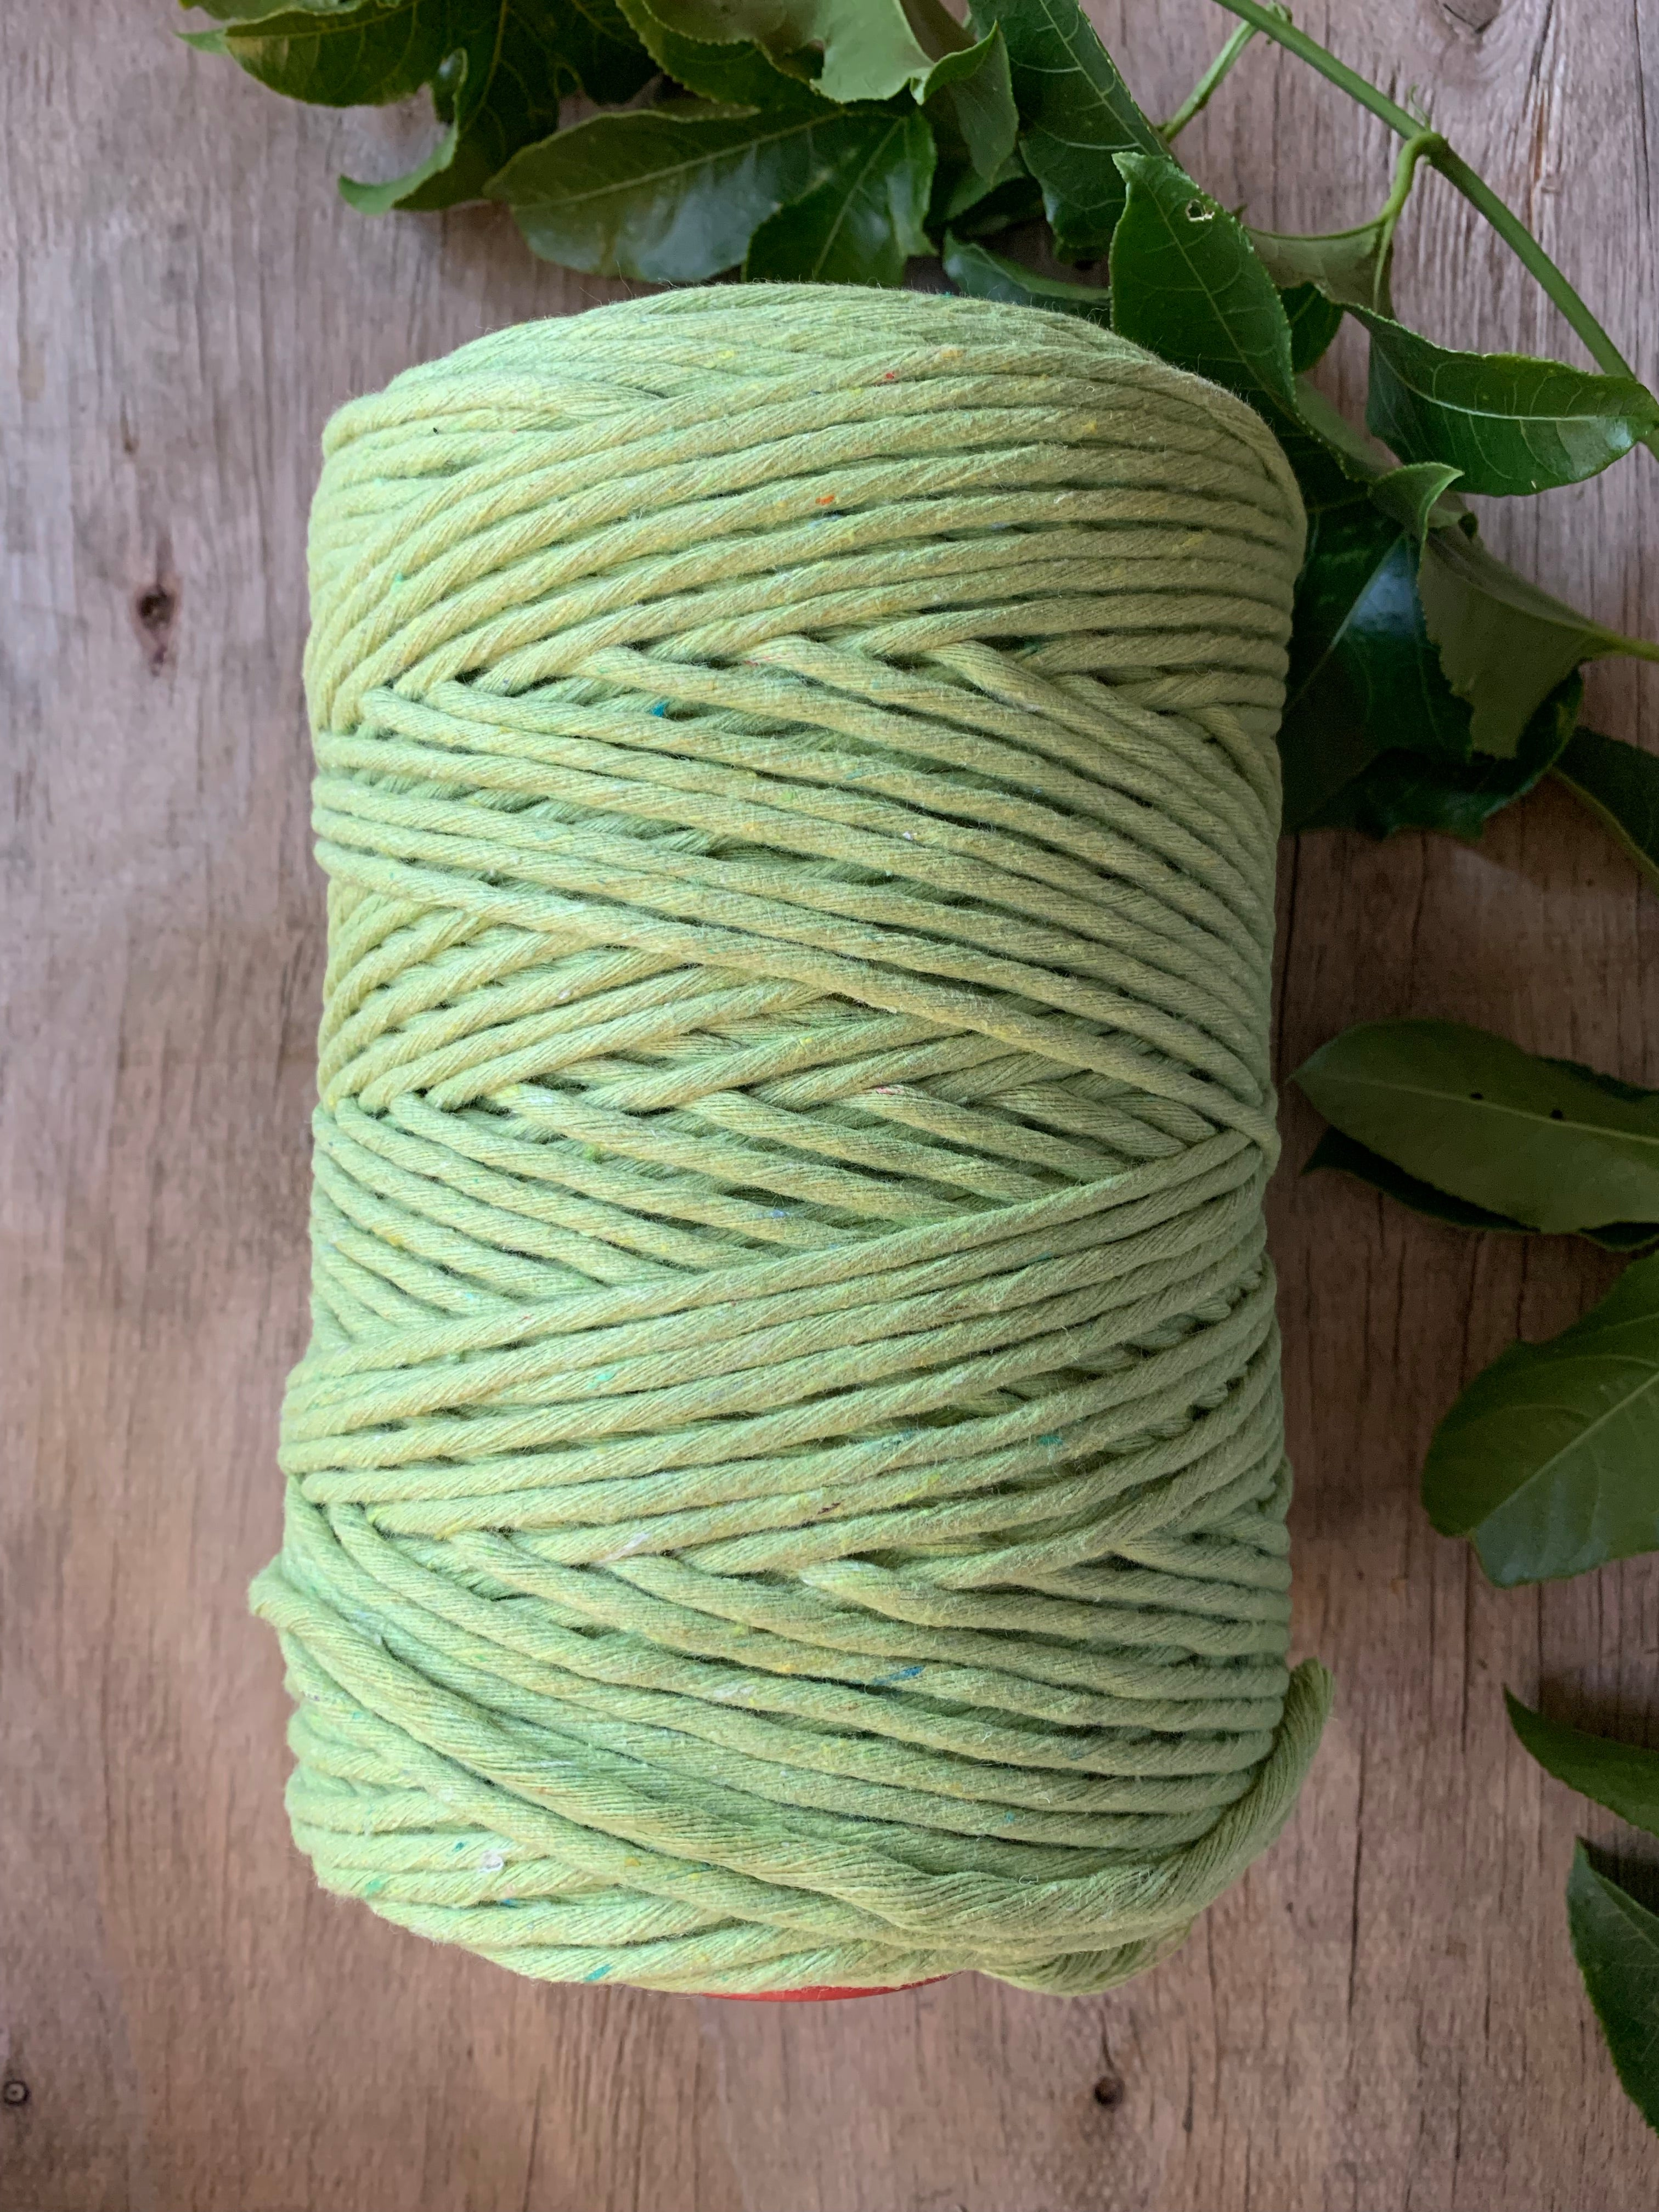 5mm Cotton Macramé String - 1kg -  'Avocado'